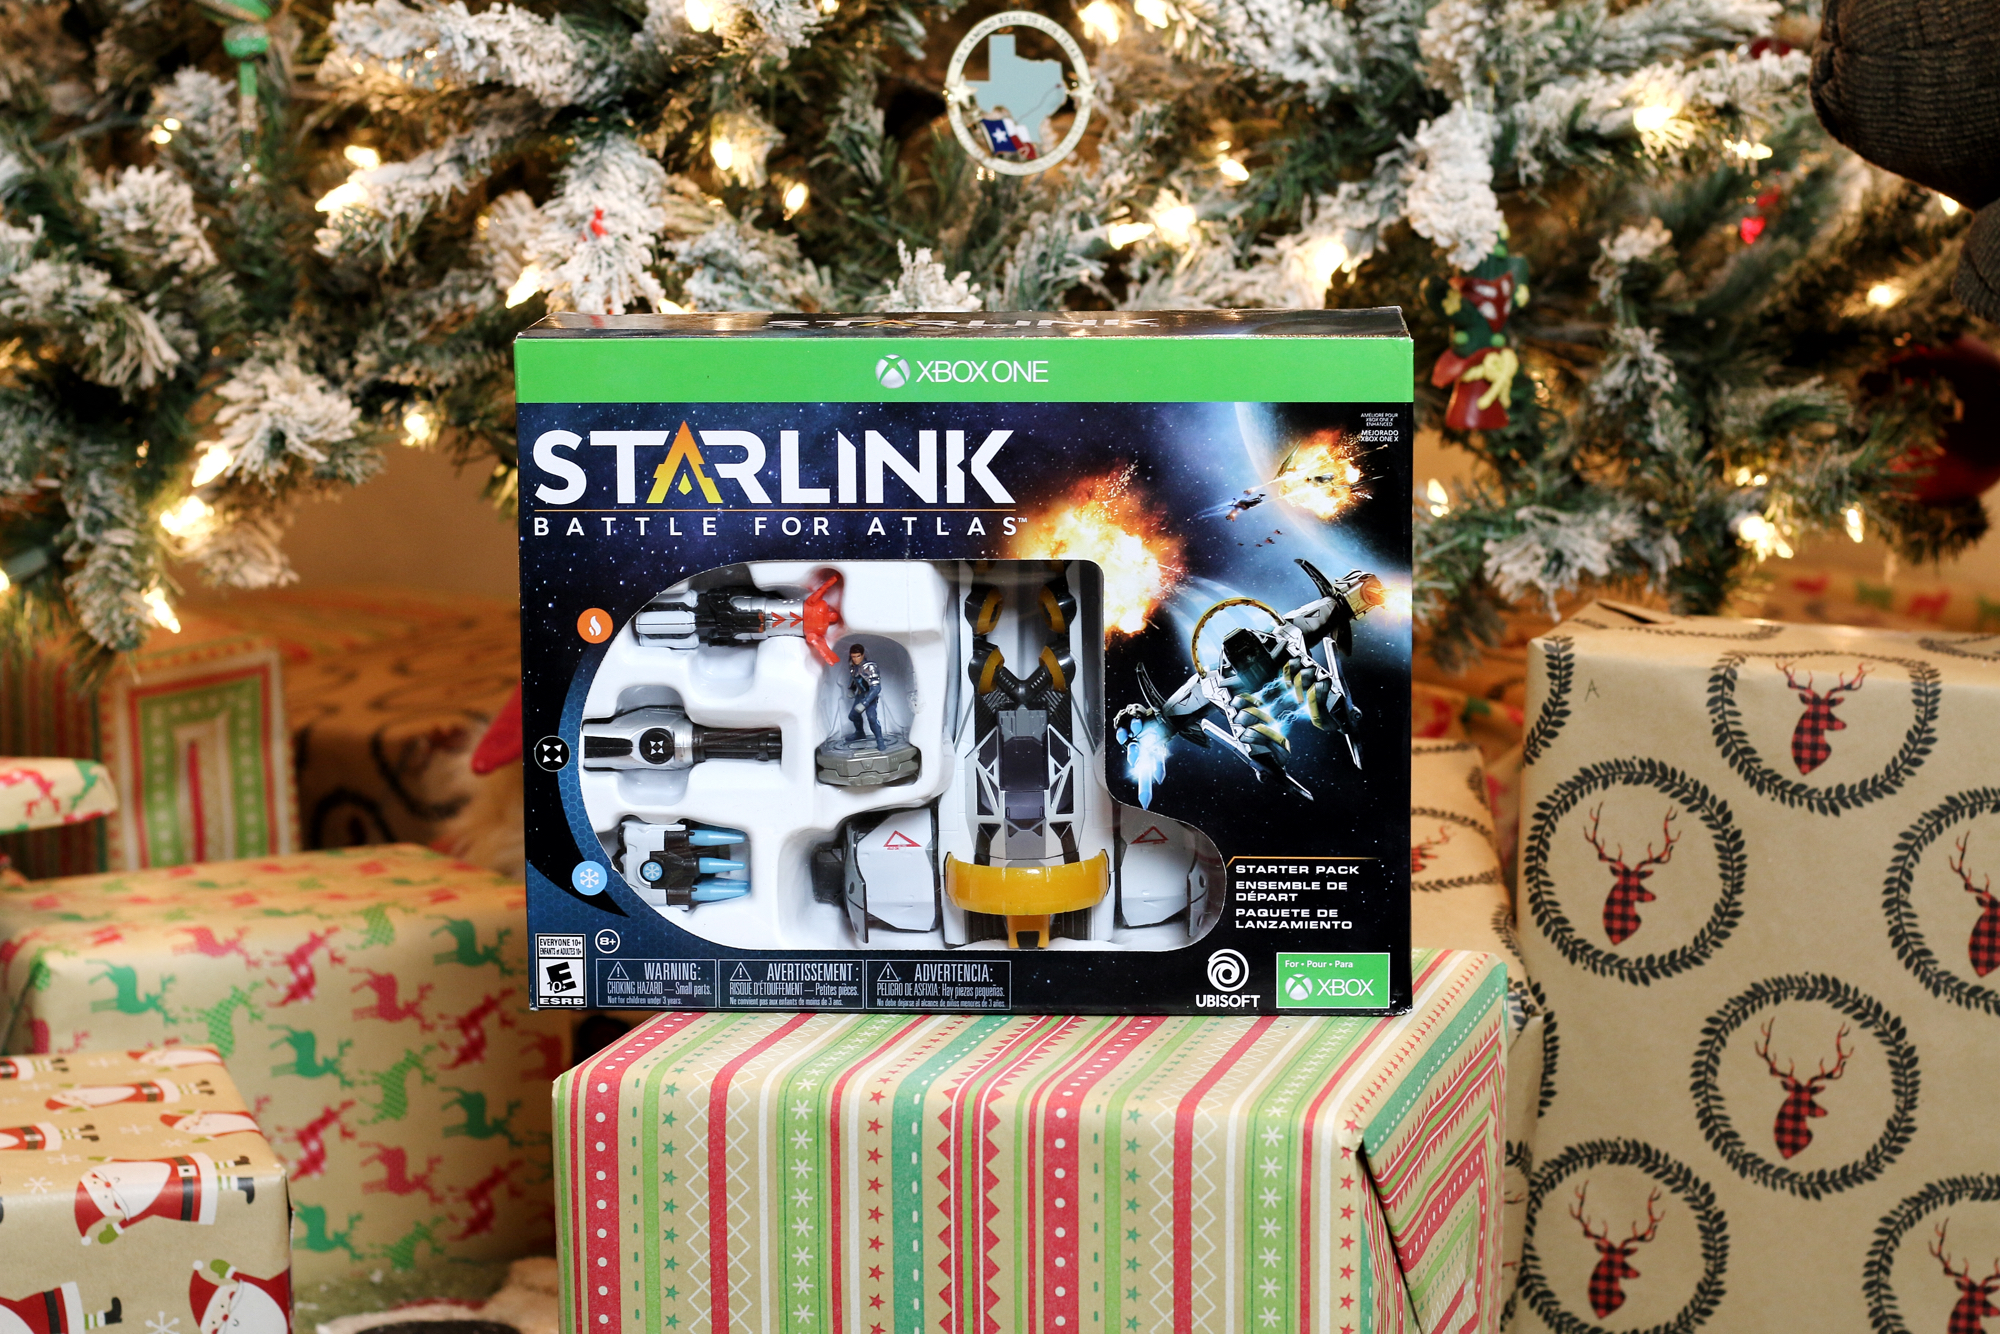 Starlink: Battle of Atlas Xbox One Starter Kit